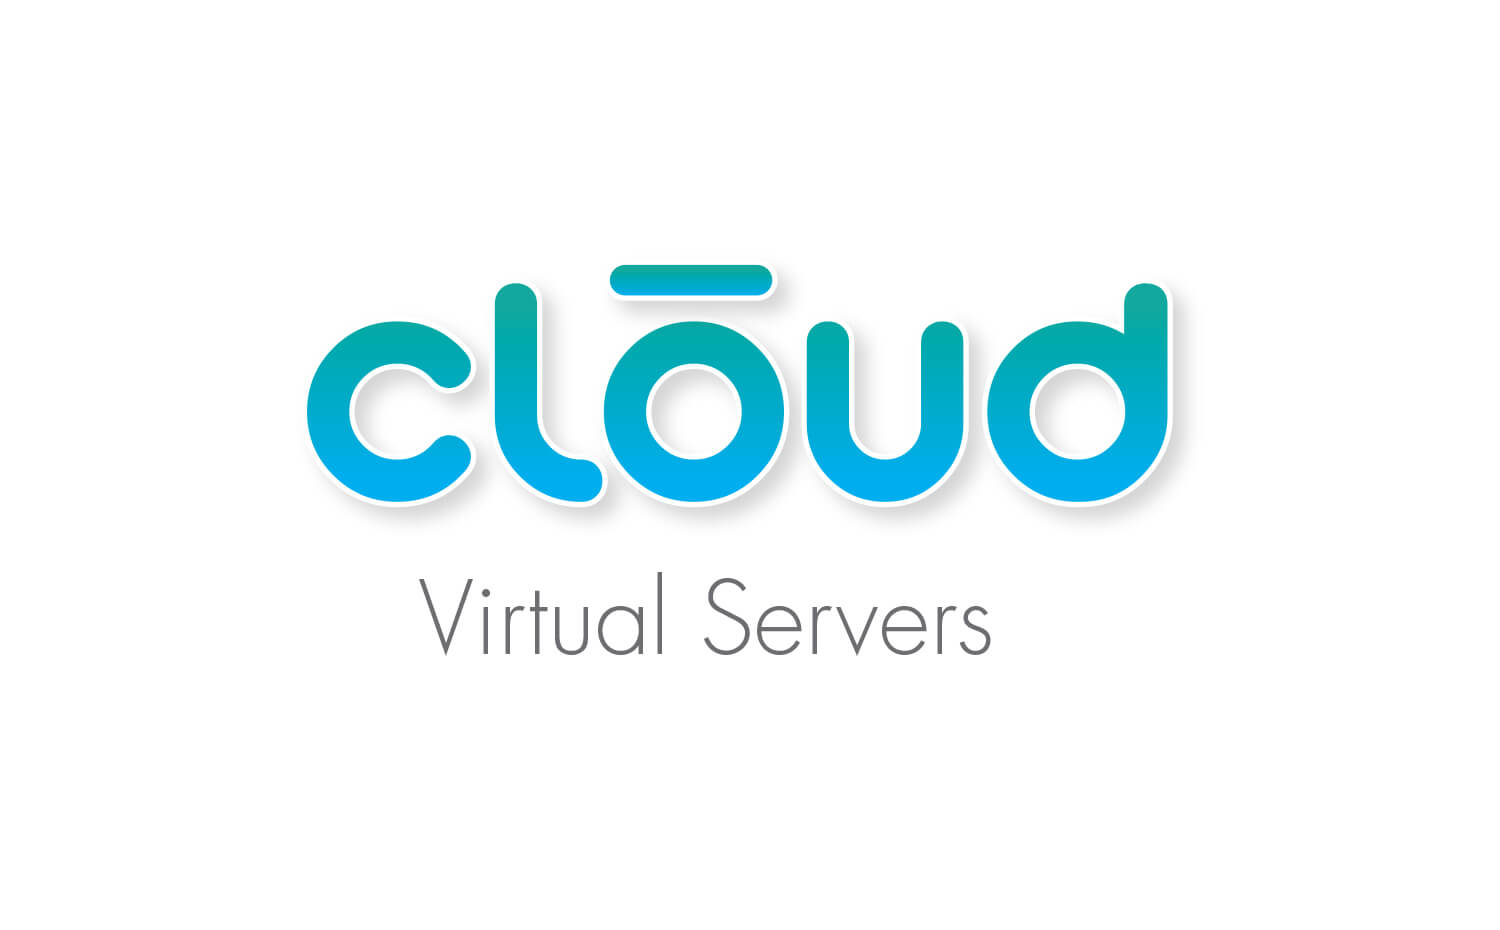 cloud virtual servers - Logo Lockup